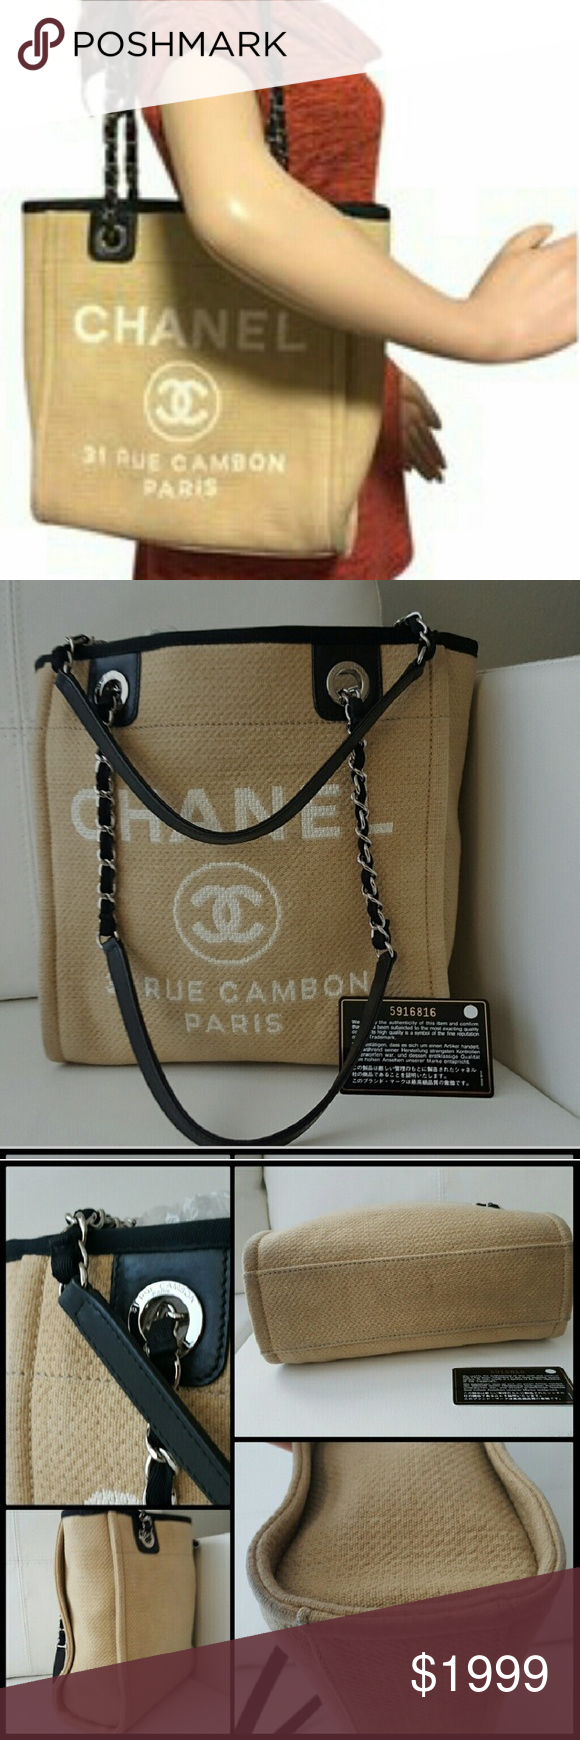 6c3491d417fc CHANEL DEAUVILLE 31 RUE CAMBON BEIGE TOTE 100% AUTHENTIC. MINT CONDITION.  LOOKS LIKE NEW. BEIGE, NEUTRAL COLOR. FOR SALE OR TRADE WITH SELECTIVE  POSHERS.